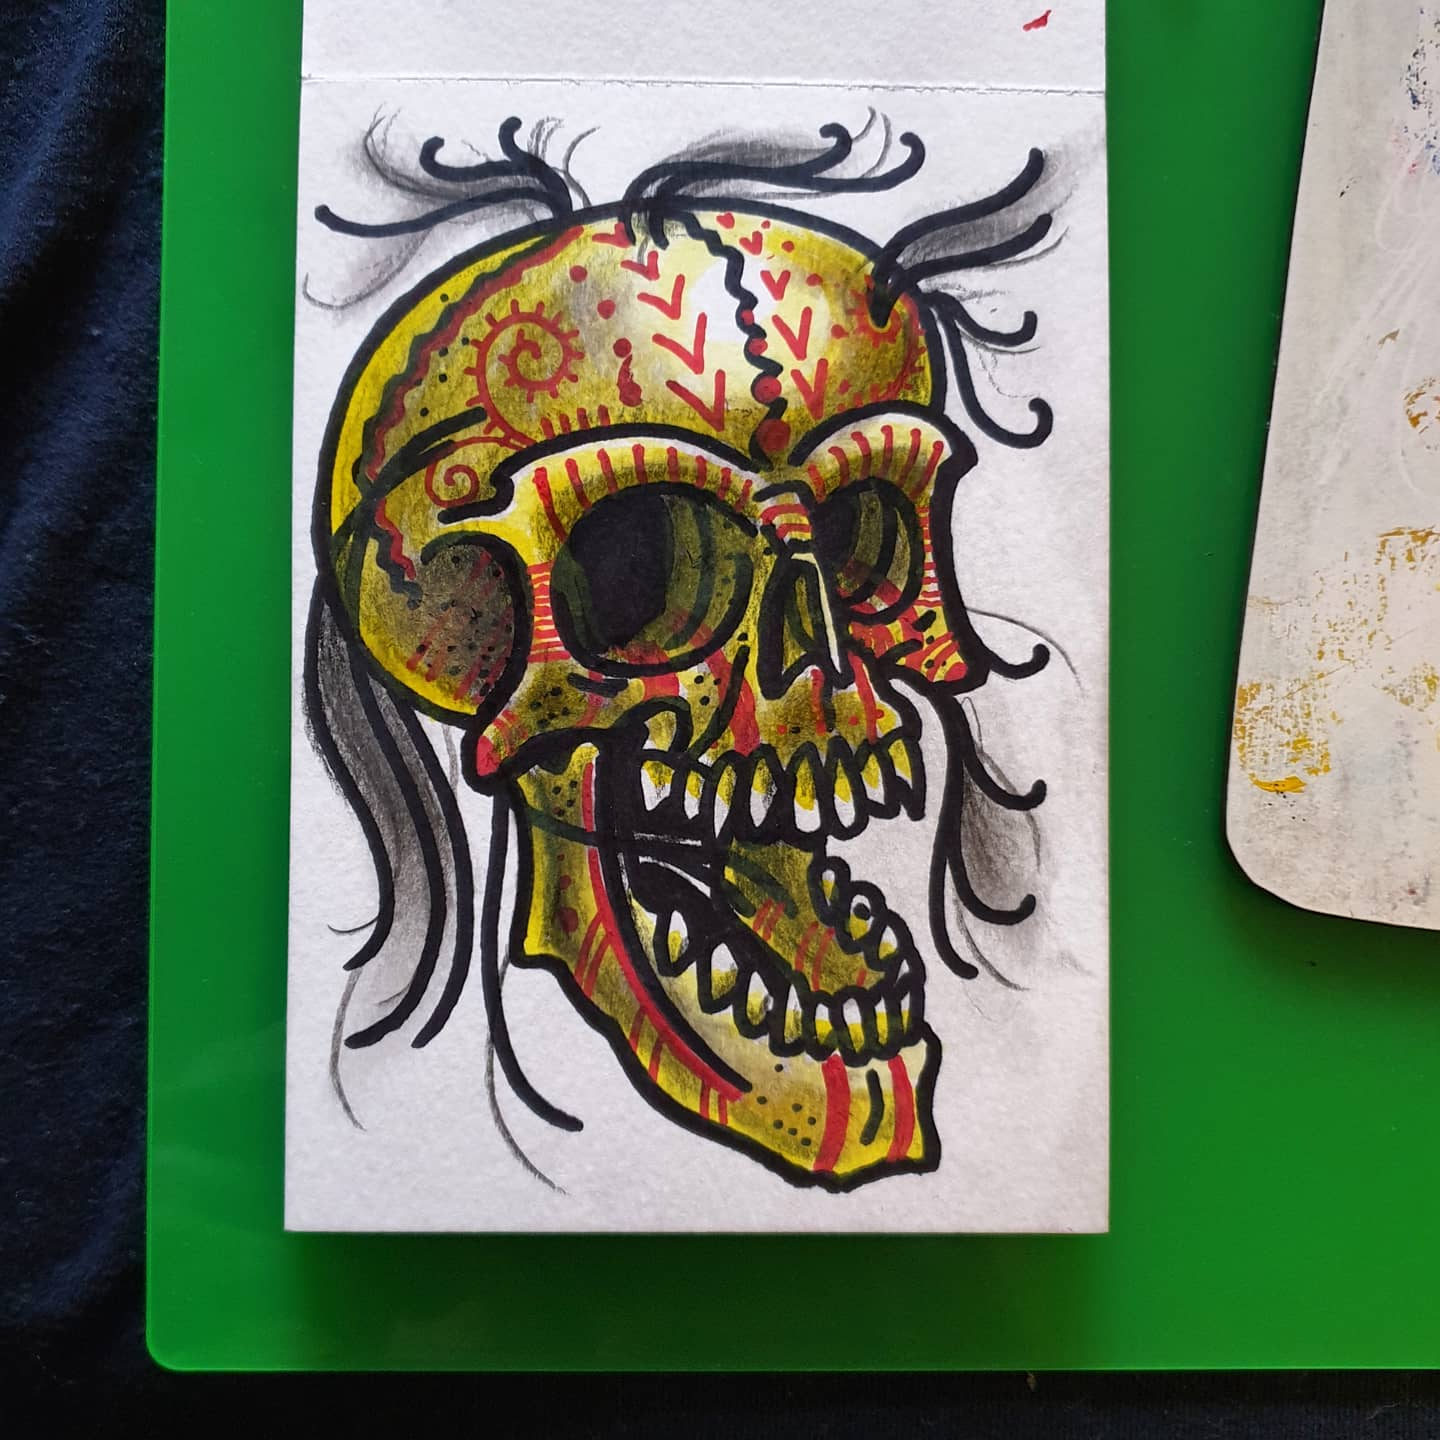 Todays effort, mixed medium postcard sized. Great fun, as always will be available to be tattooed if/when!! Thanks for looking if anyone likes what they see u can buy any of these A6 originals posted for £15 just drop me a msg - any support is greatly appreciated however i onow EVERYONE is skint.... skull skullpainting skulltatoo tribalskulls tattoodesign tattooart tattooflash drphmartins watercolour painting painteveryday draweveryday keepingbusy scottishtattooer scotland studioxiiigallery studioxiii tattoosbyalanross alrosstattoo edinburgh